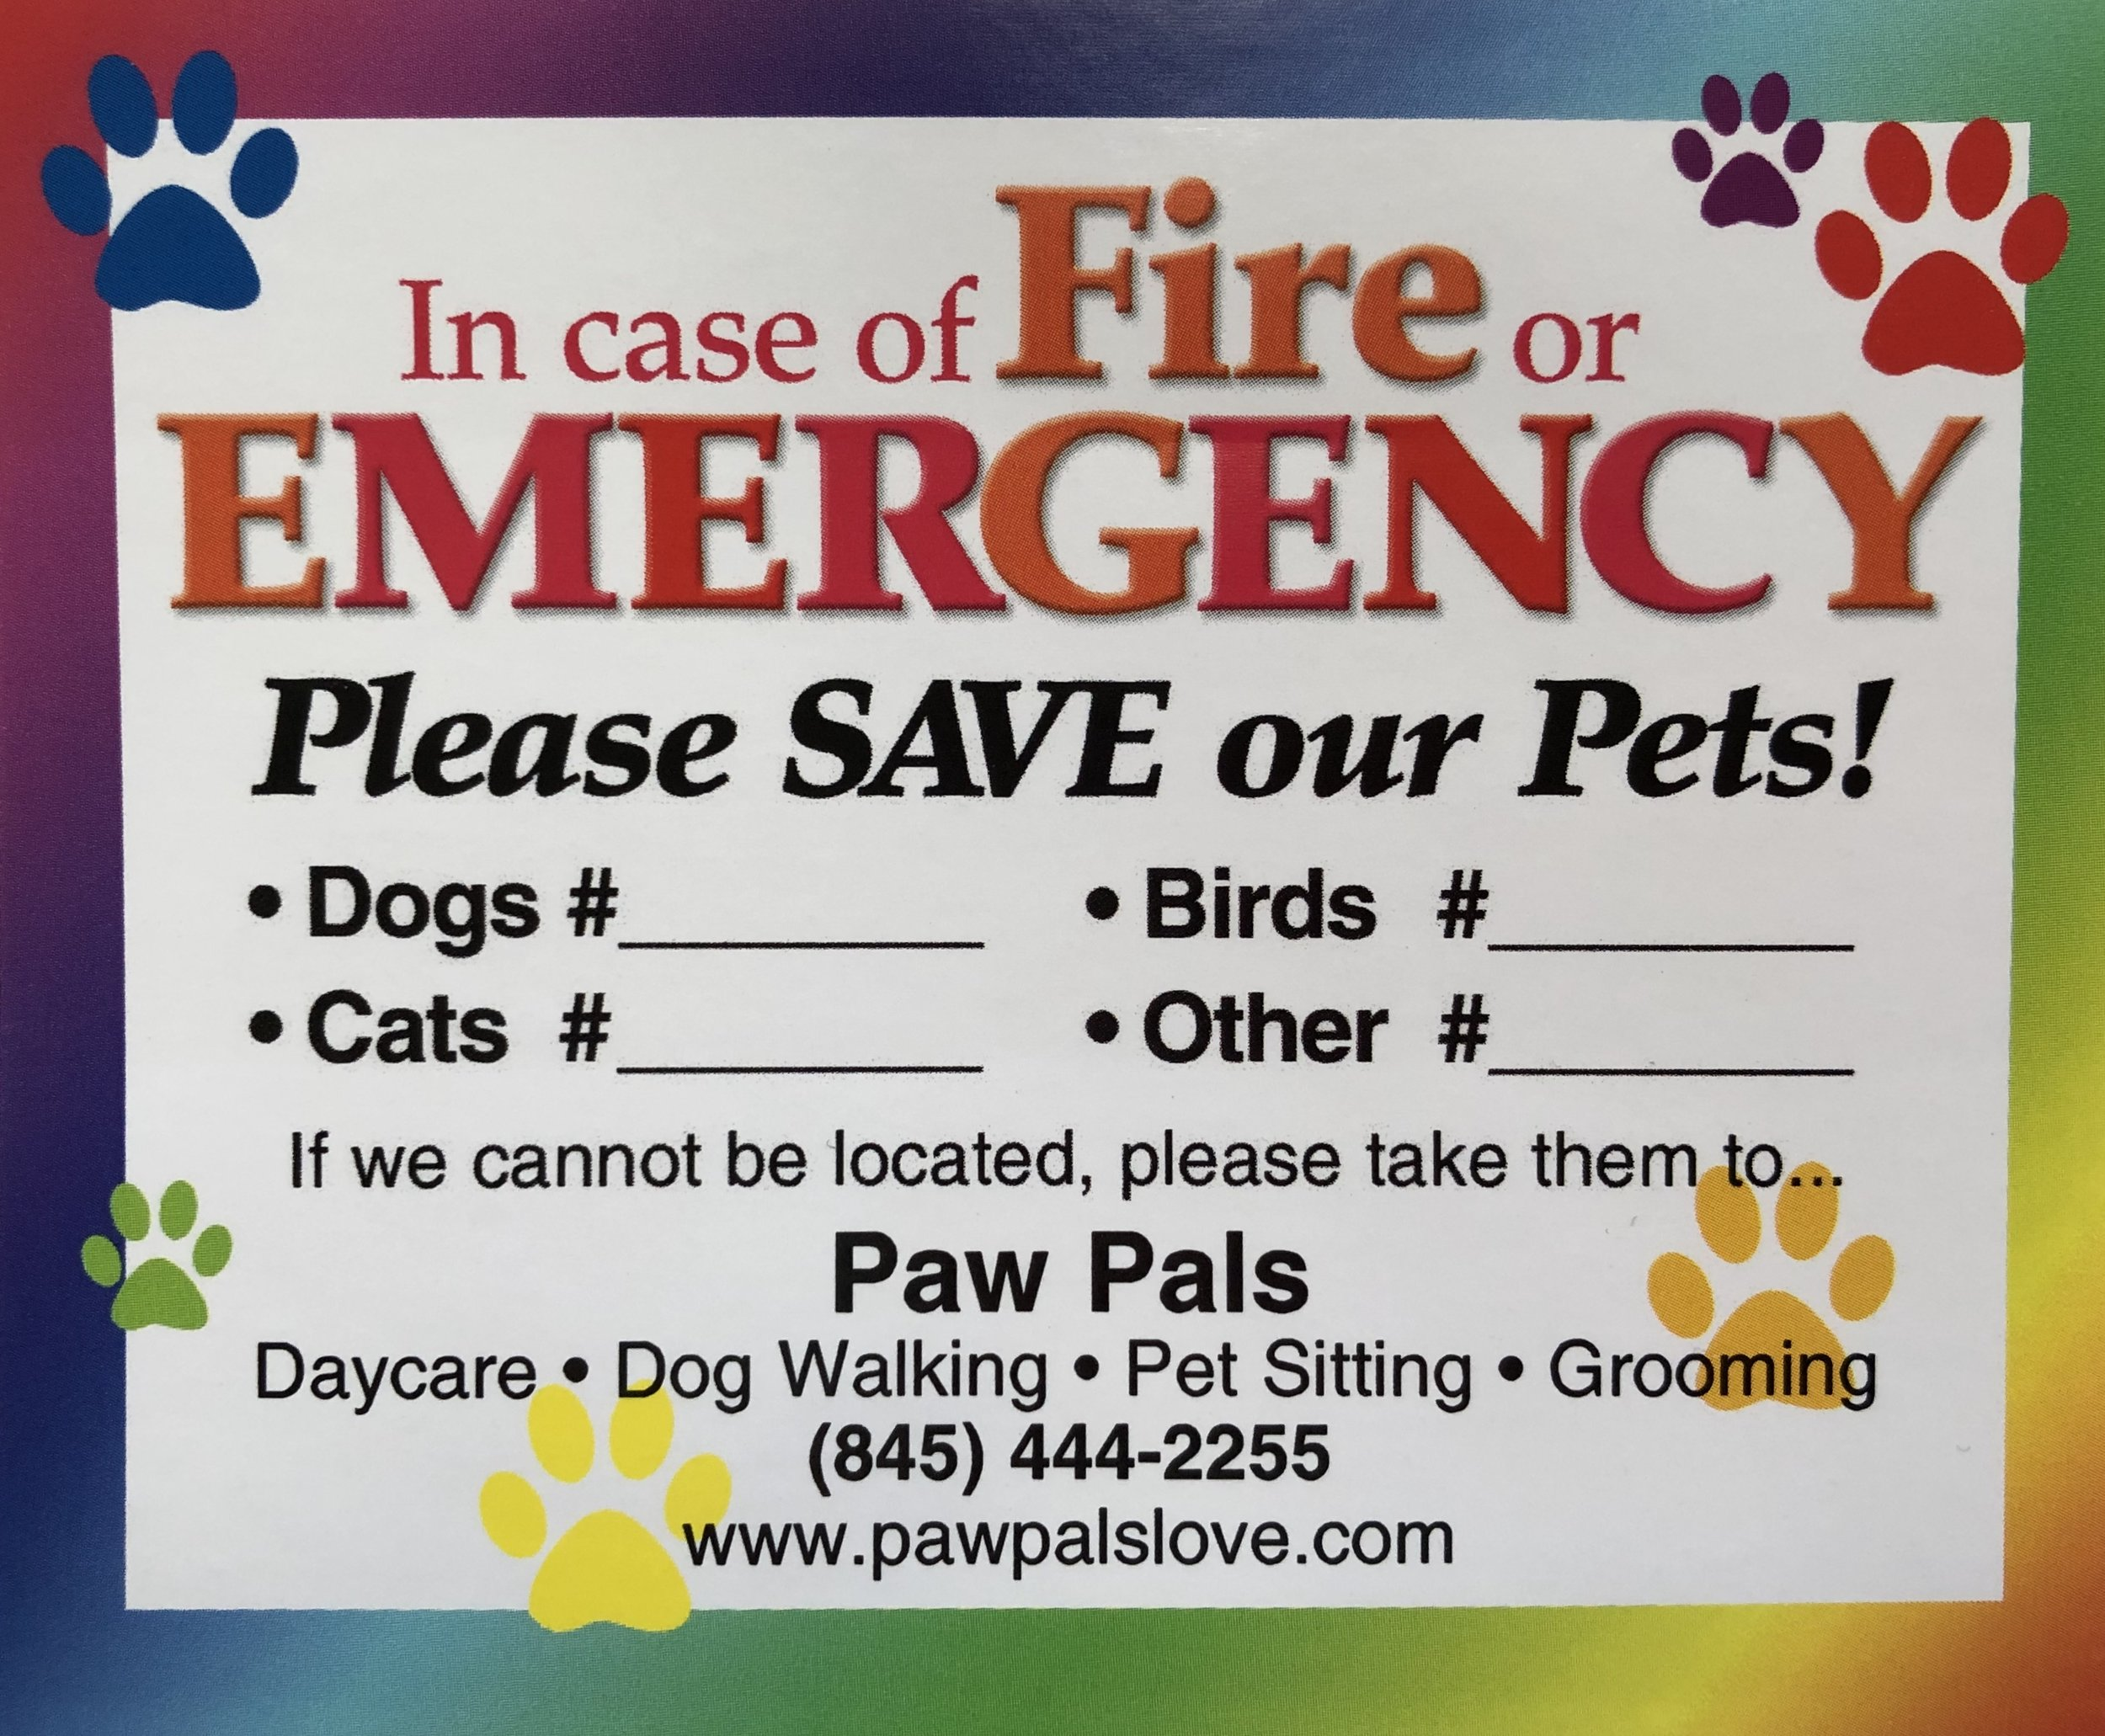 Decal on Your Window Specifying That You Have Pets - If you have pets at home, it is also a great idea to put an emergency decal, like the Paw Pals Emergency Decal on your door or at the entrances of your home. This will help emergency responders know to rescue your pets if you ever have an emergency at your house while you are not home. It could very potentially help save one of your pet's lives and It could be a deterrent to someone who wants to rob your house.